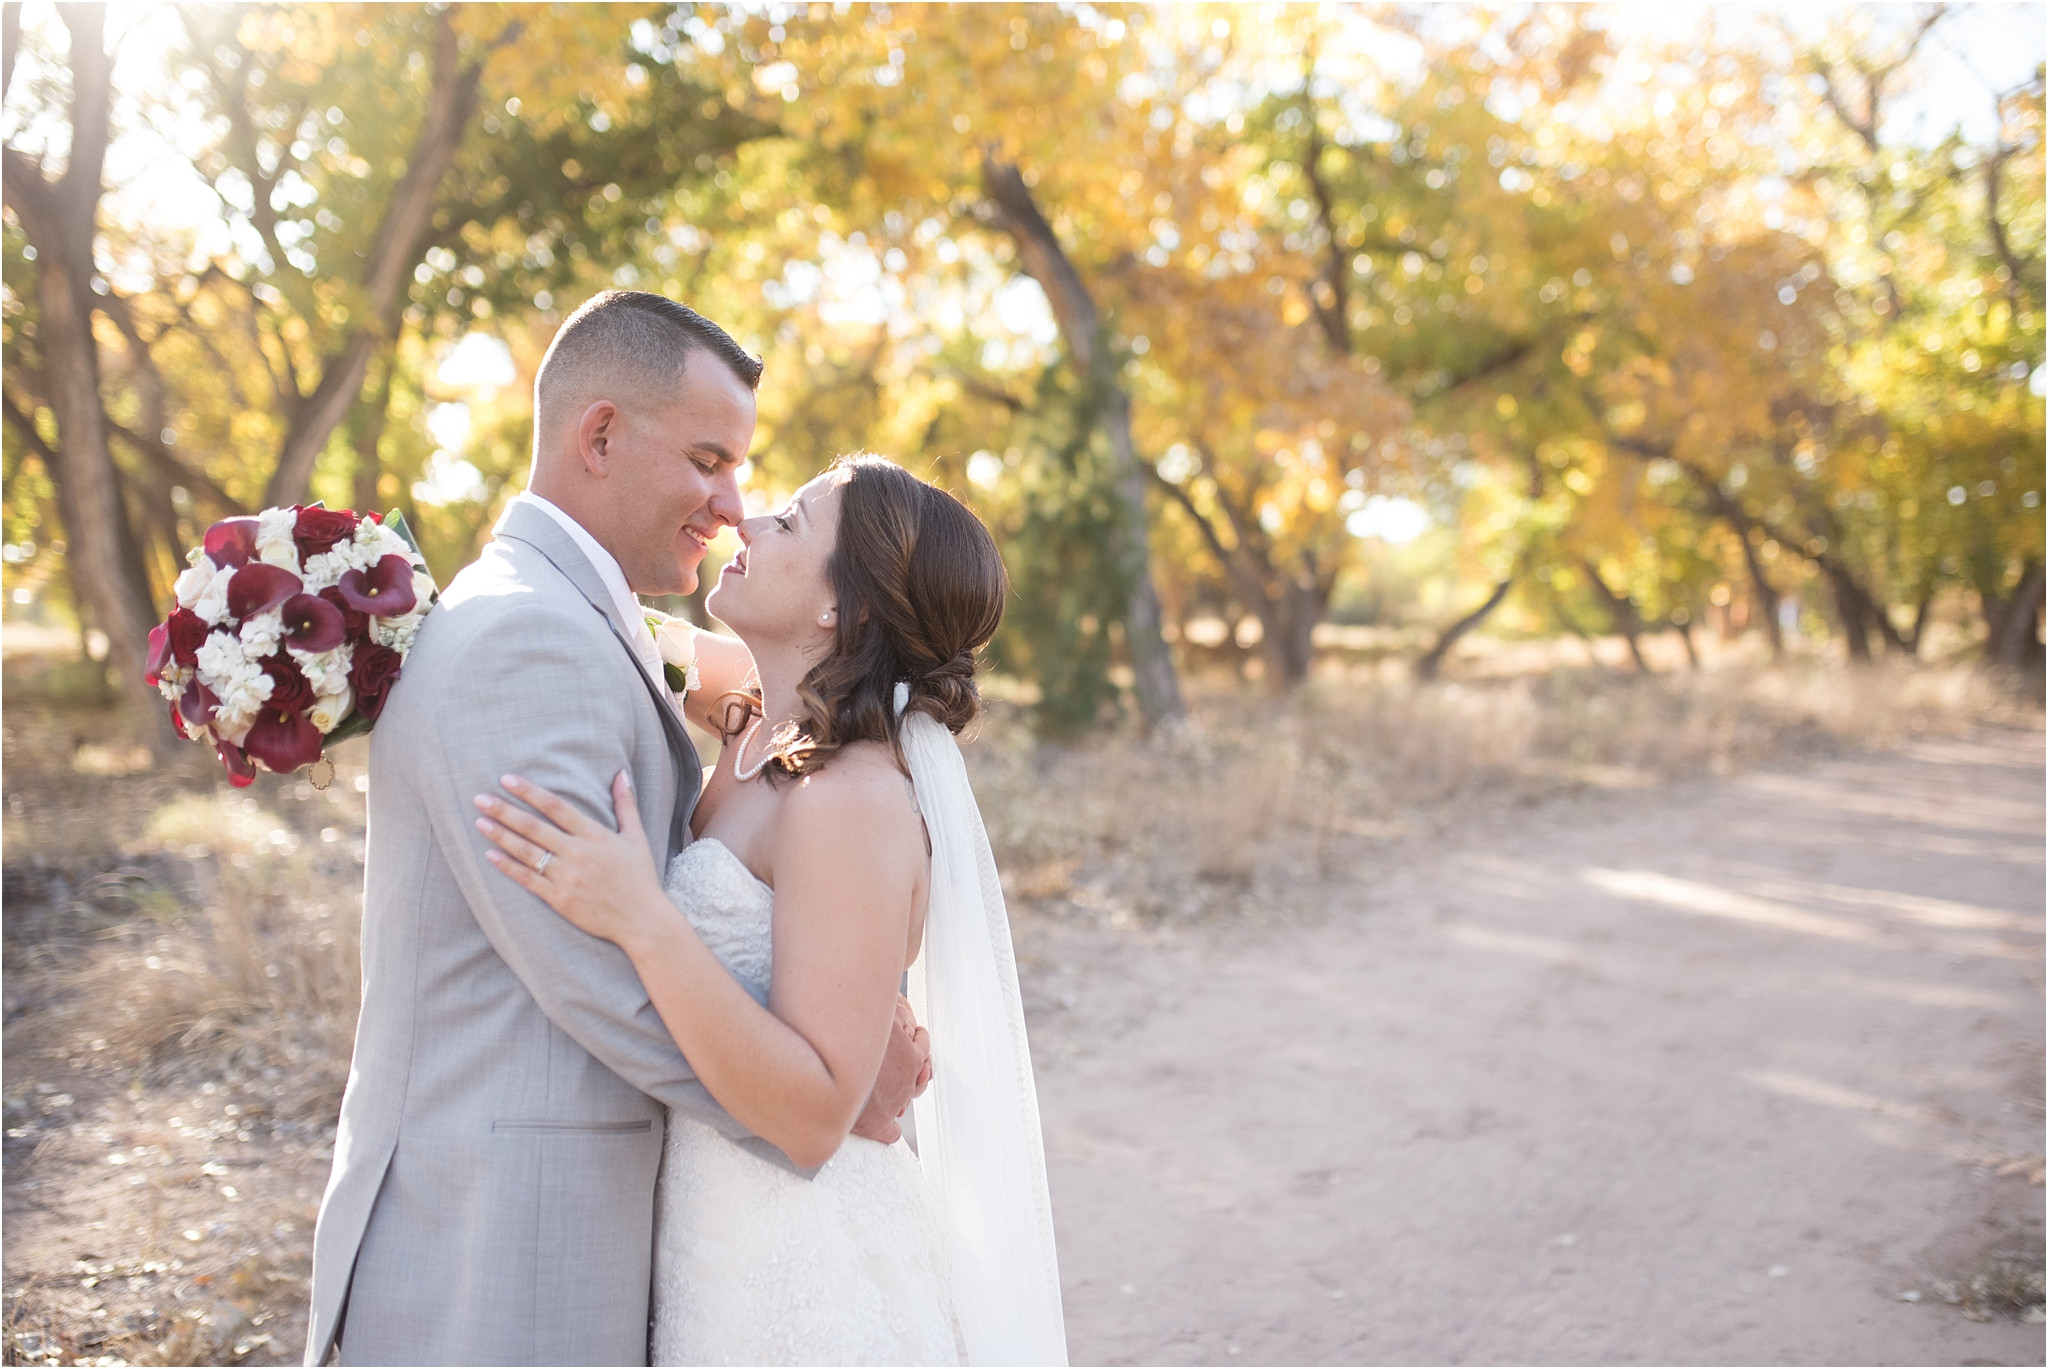 kayla kitts photography - albuquerque wedding photographer - hairpins and scissors - a cake odyssey - new mexico wedding photographer_0051.jpg